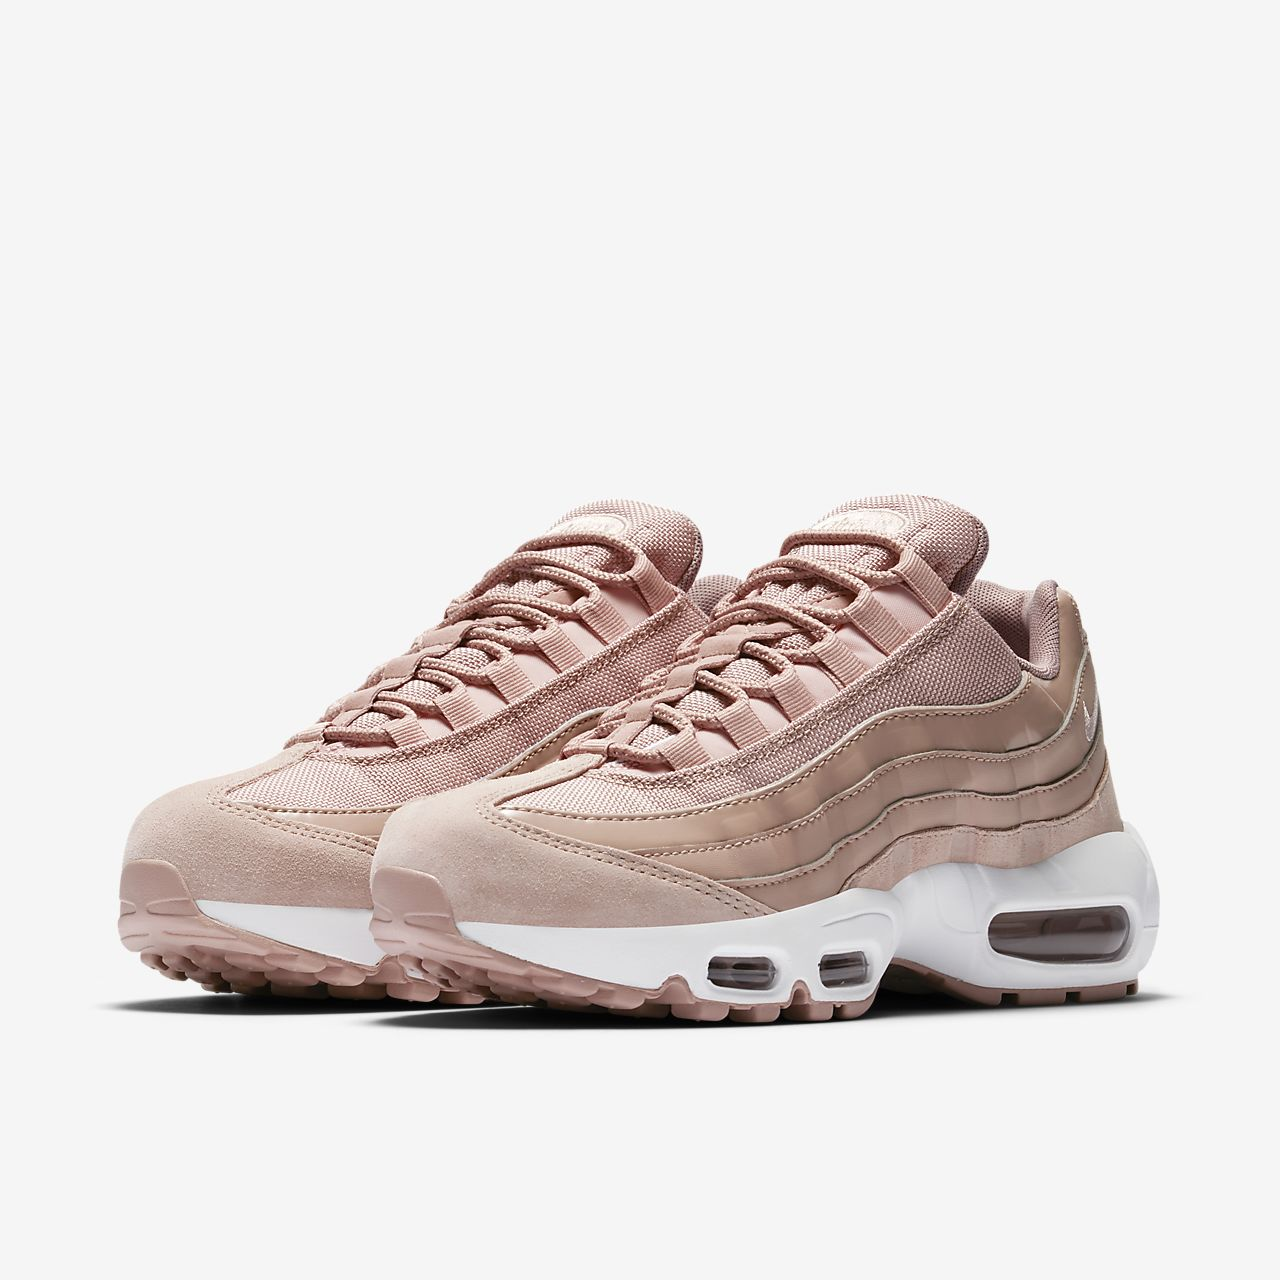 nike air max 95 og women 39 s shoe eg. Black Bedroom Furniture Sets. Home Design Ideas